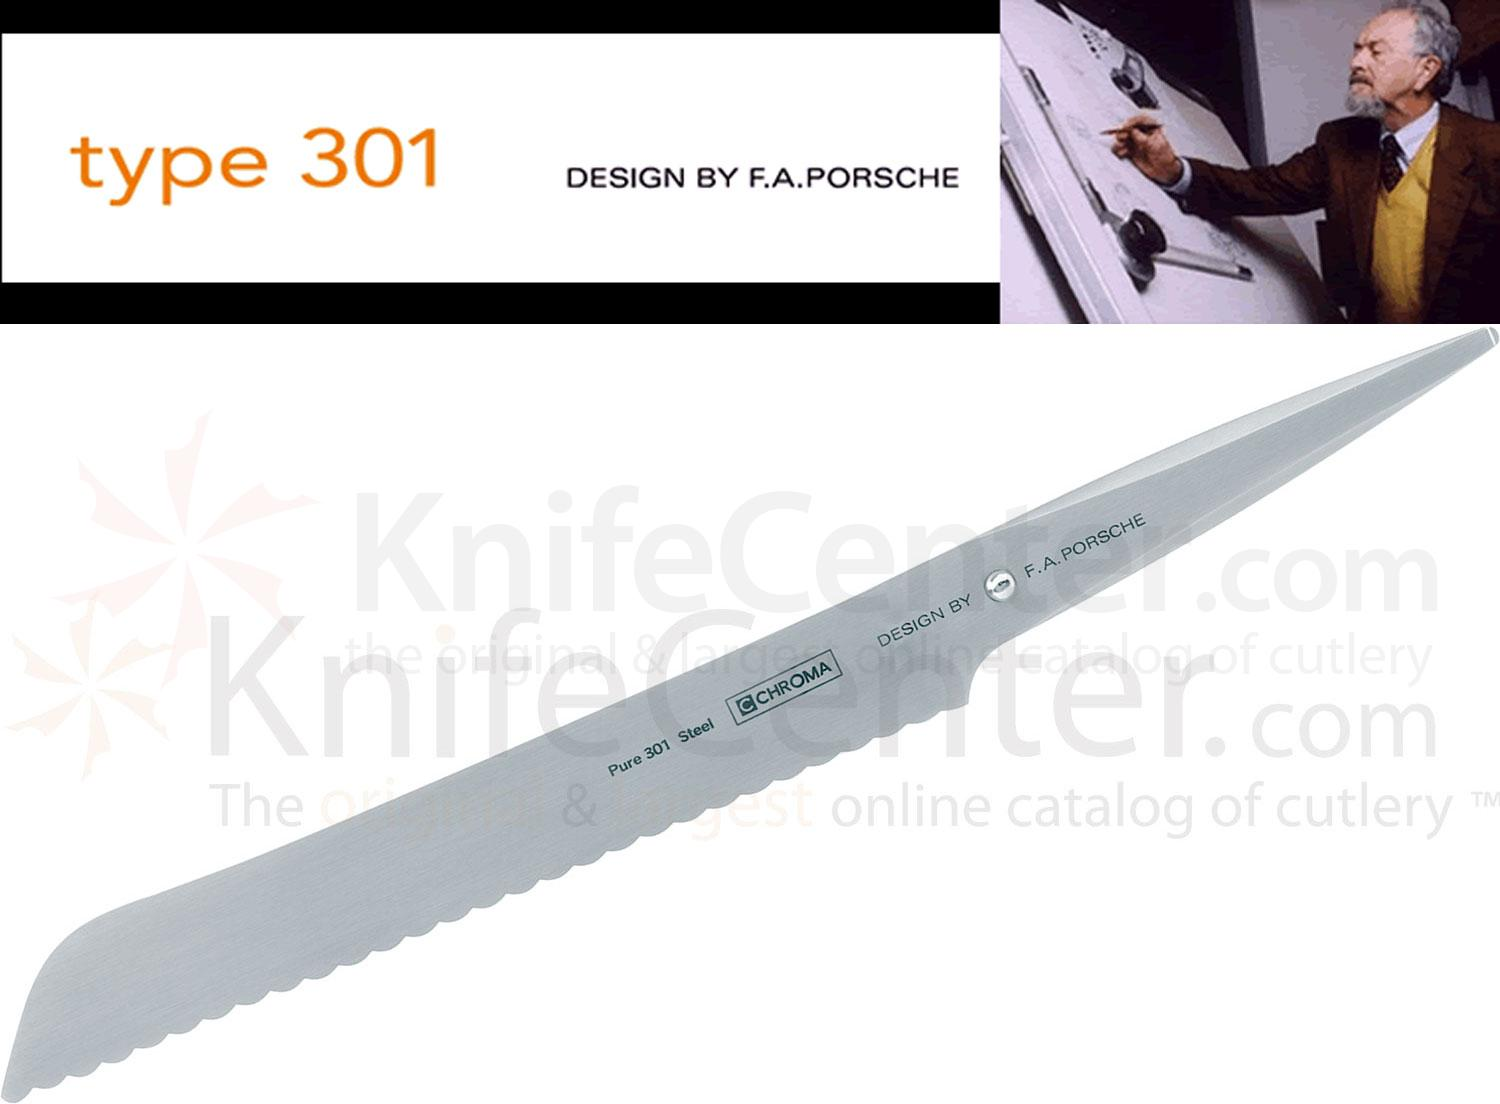 Chroma Cutlery F.A. Porsche Type 301 8-1/2 inch Bread Knife, Japanese 301 Stainless Steel